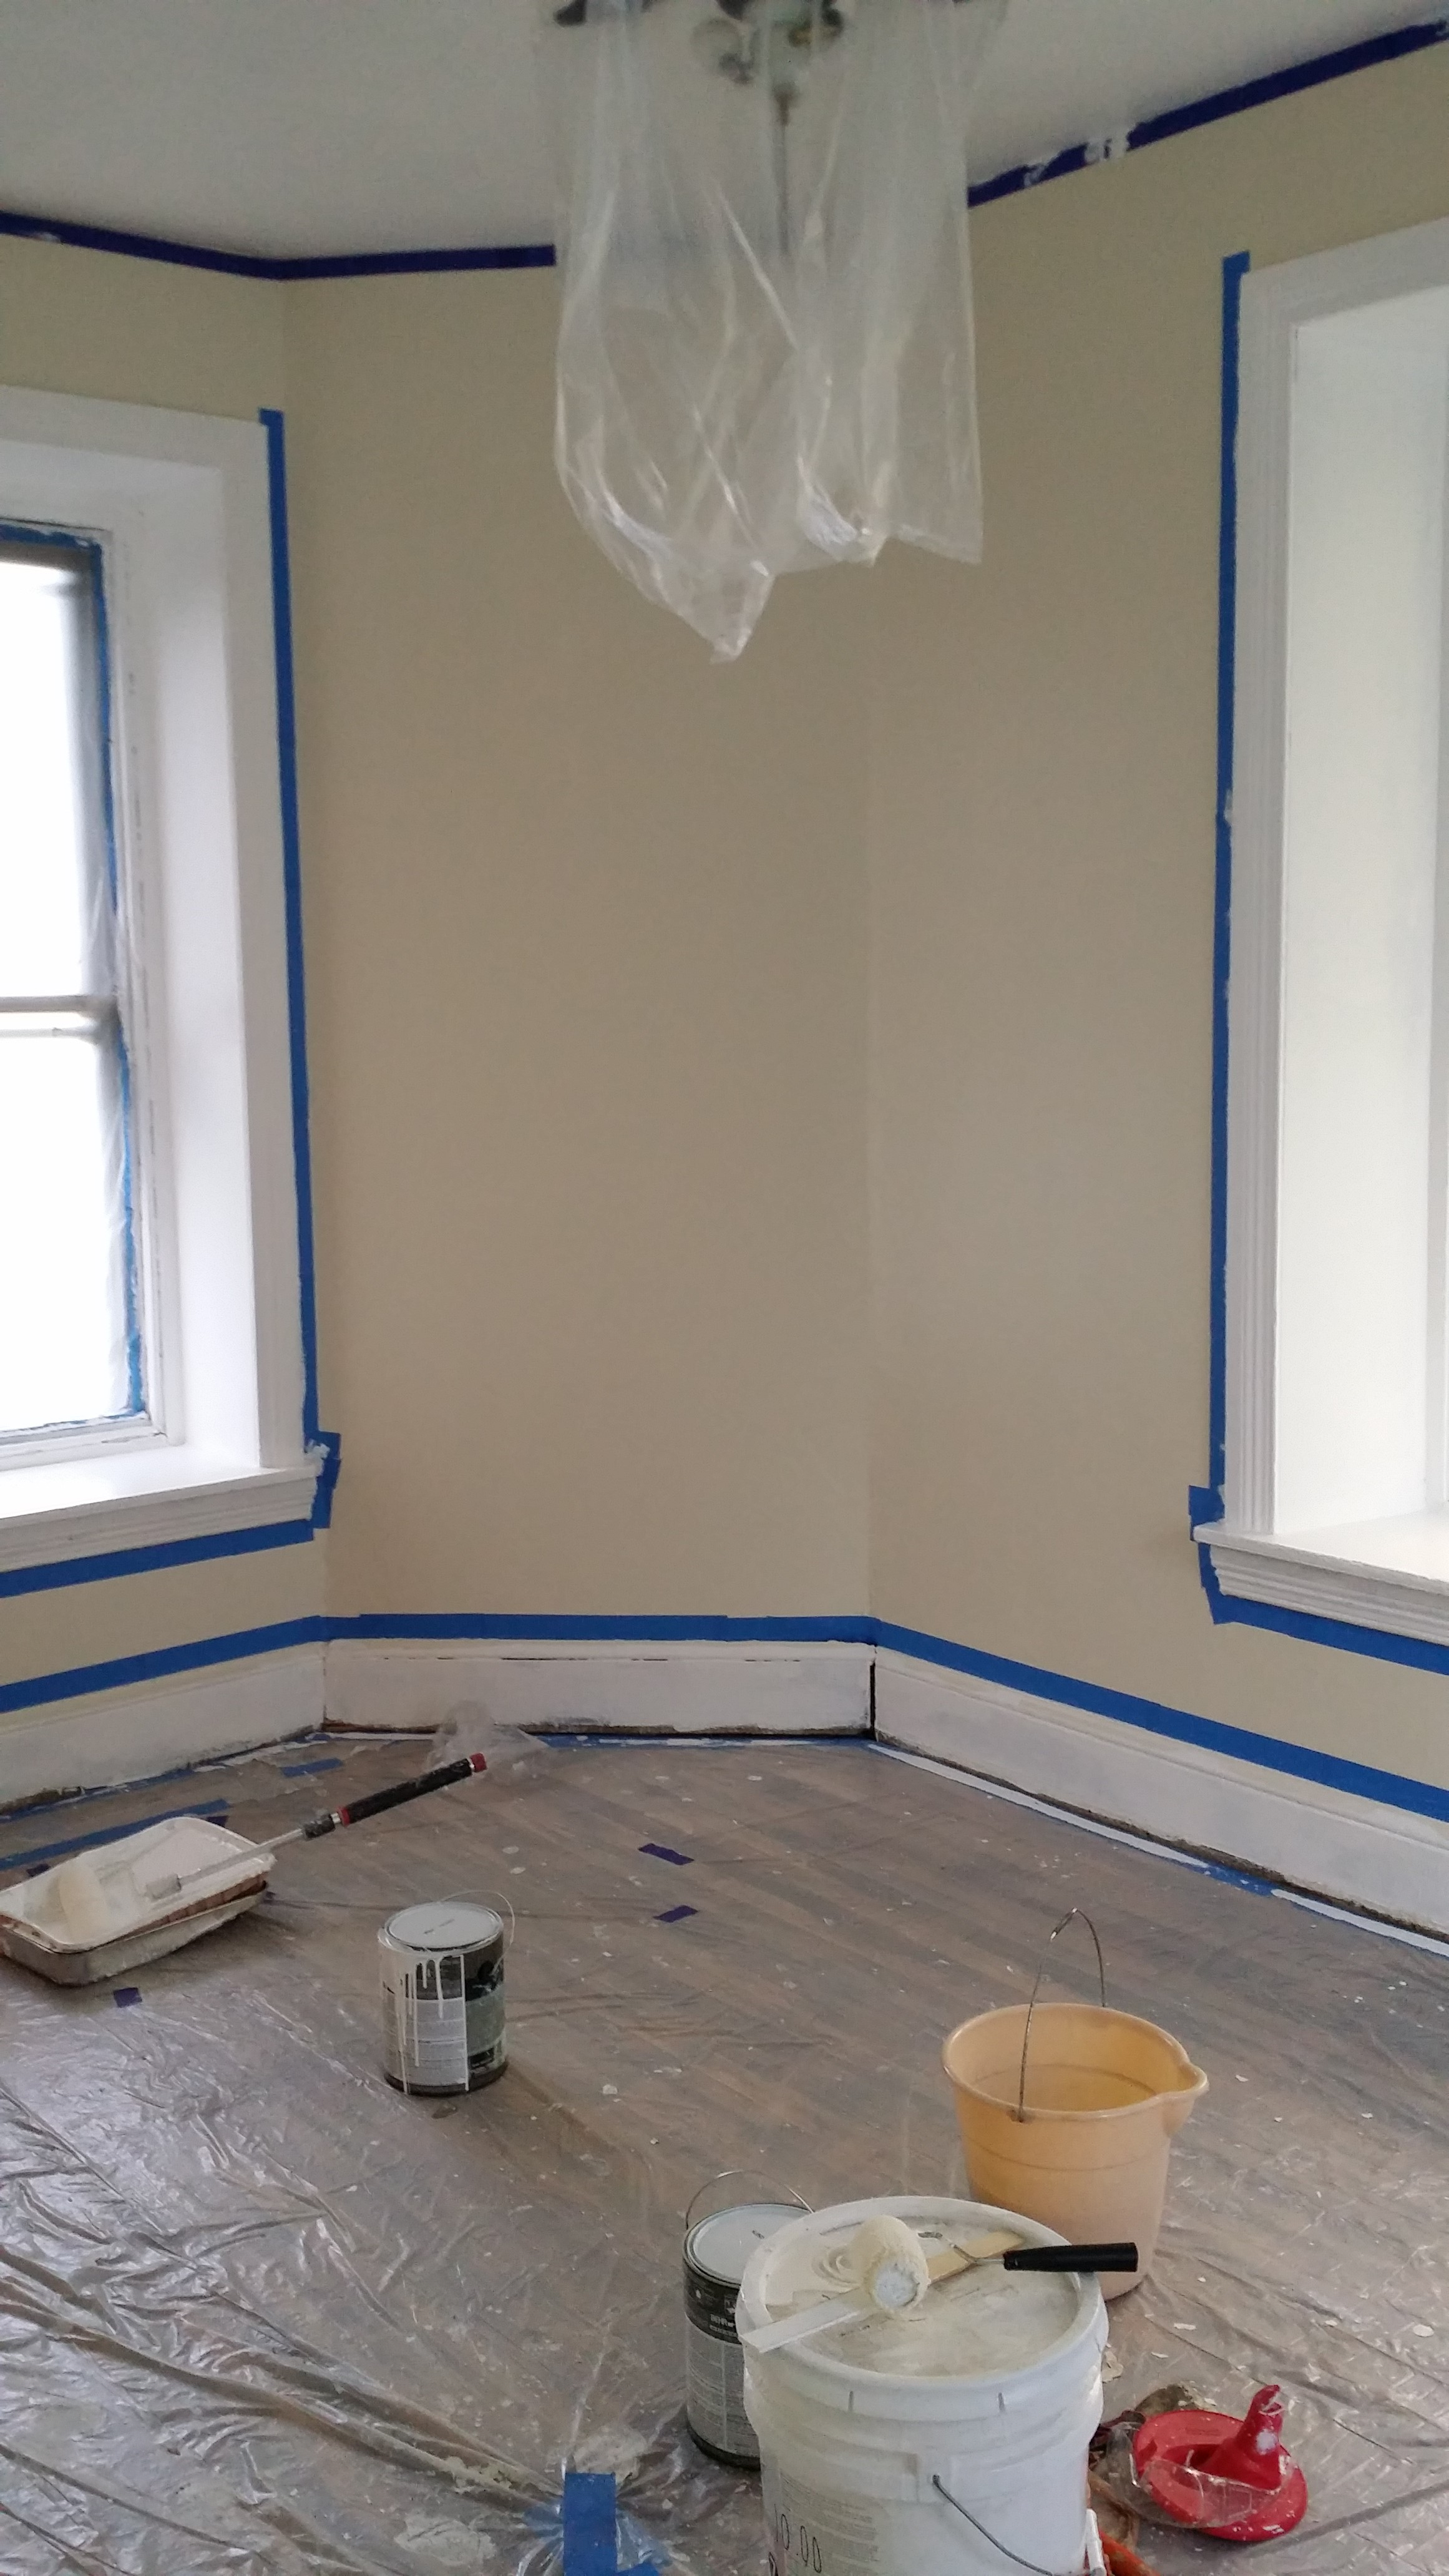 Bedroom walls primed and painted.